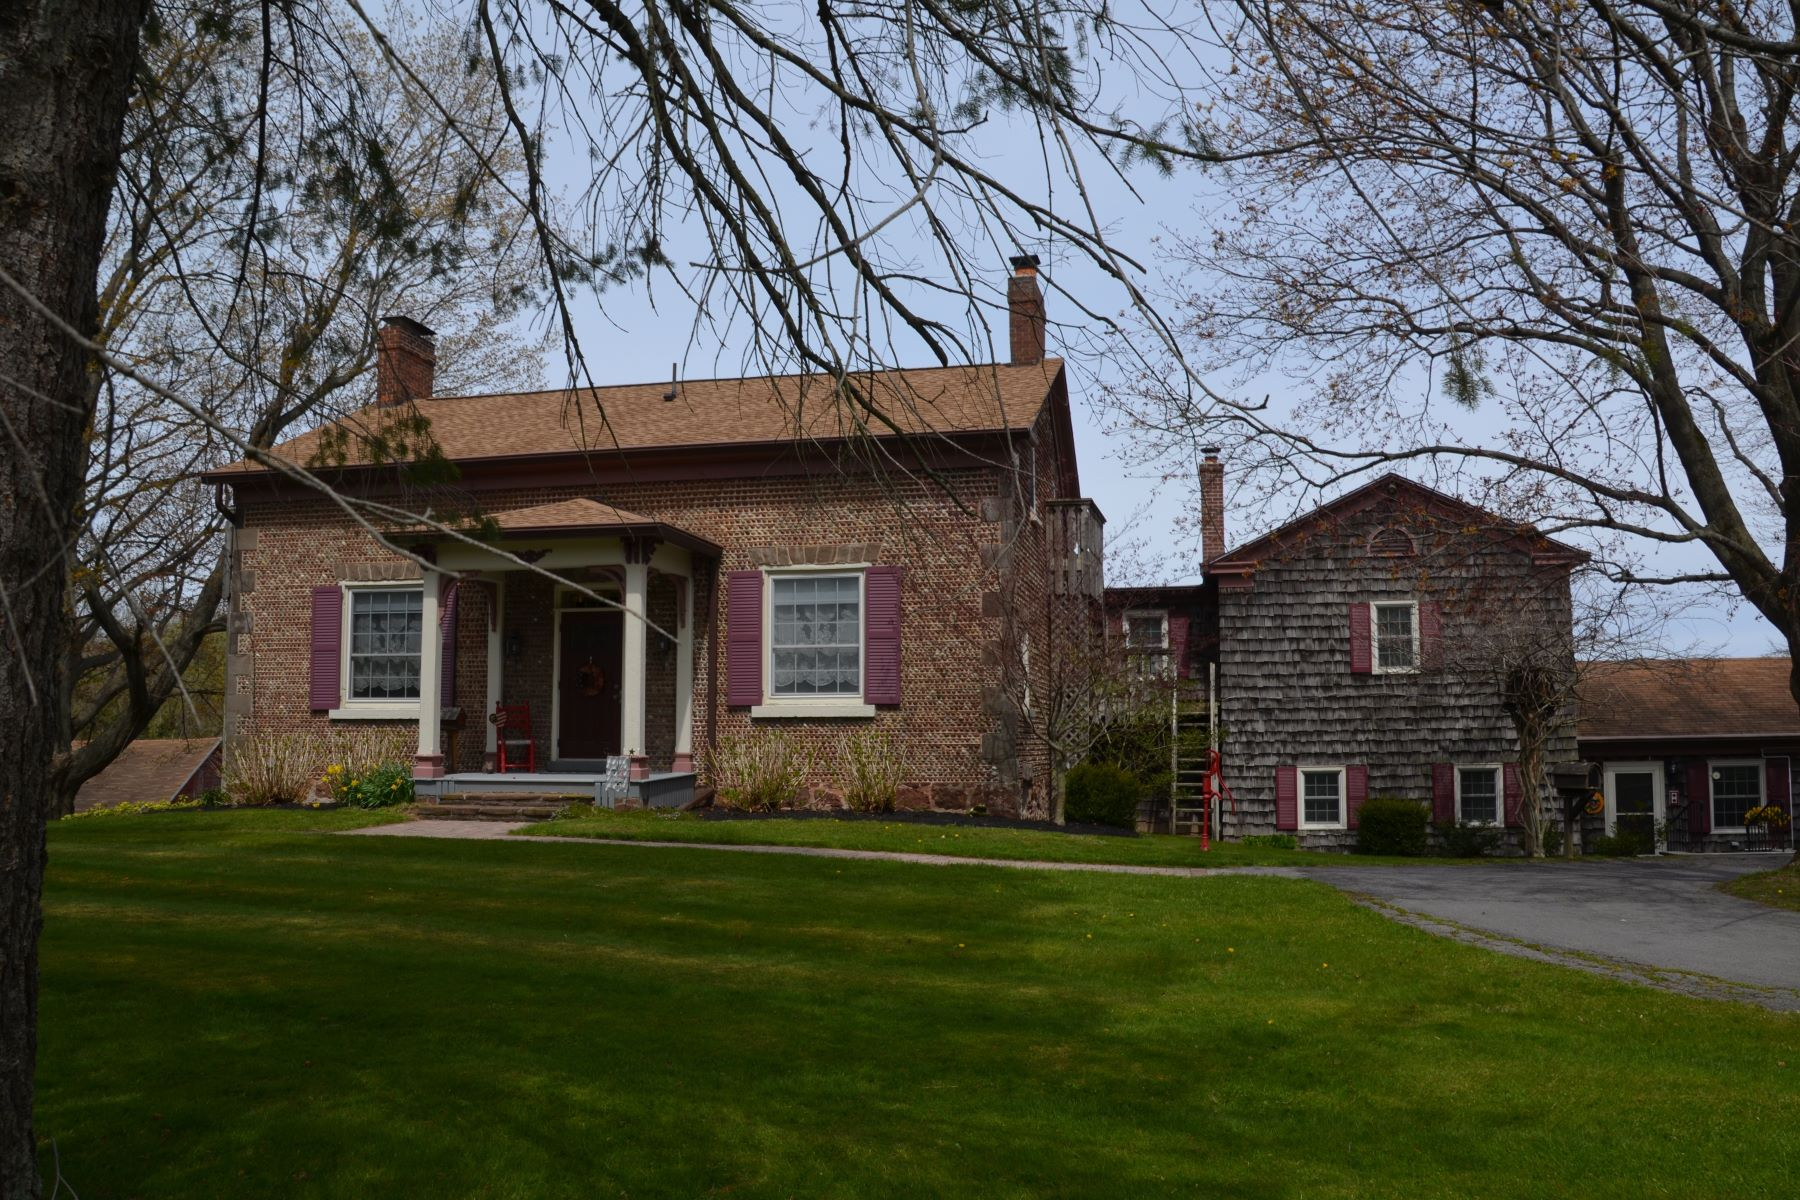 Single Family Homes for Active at Historic Cobblestone Farmhouse 7563 Lake Road Sodus, New York 14551 United States